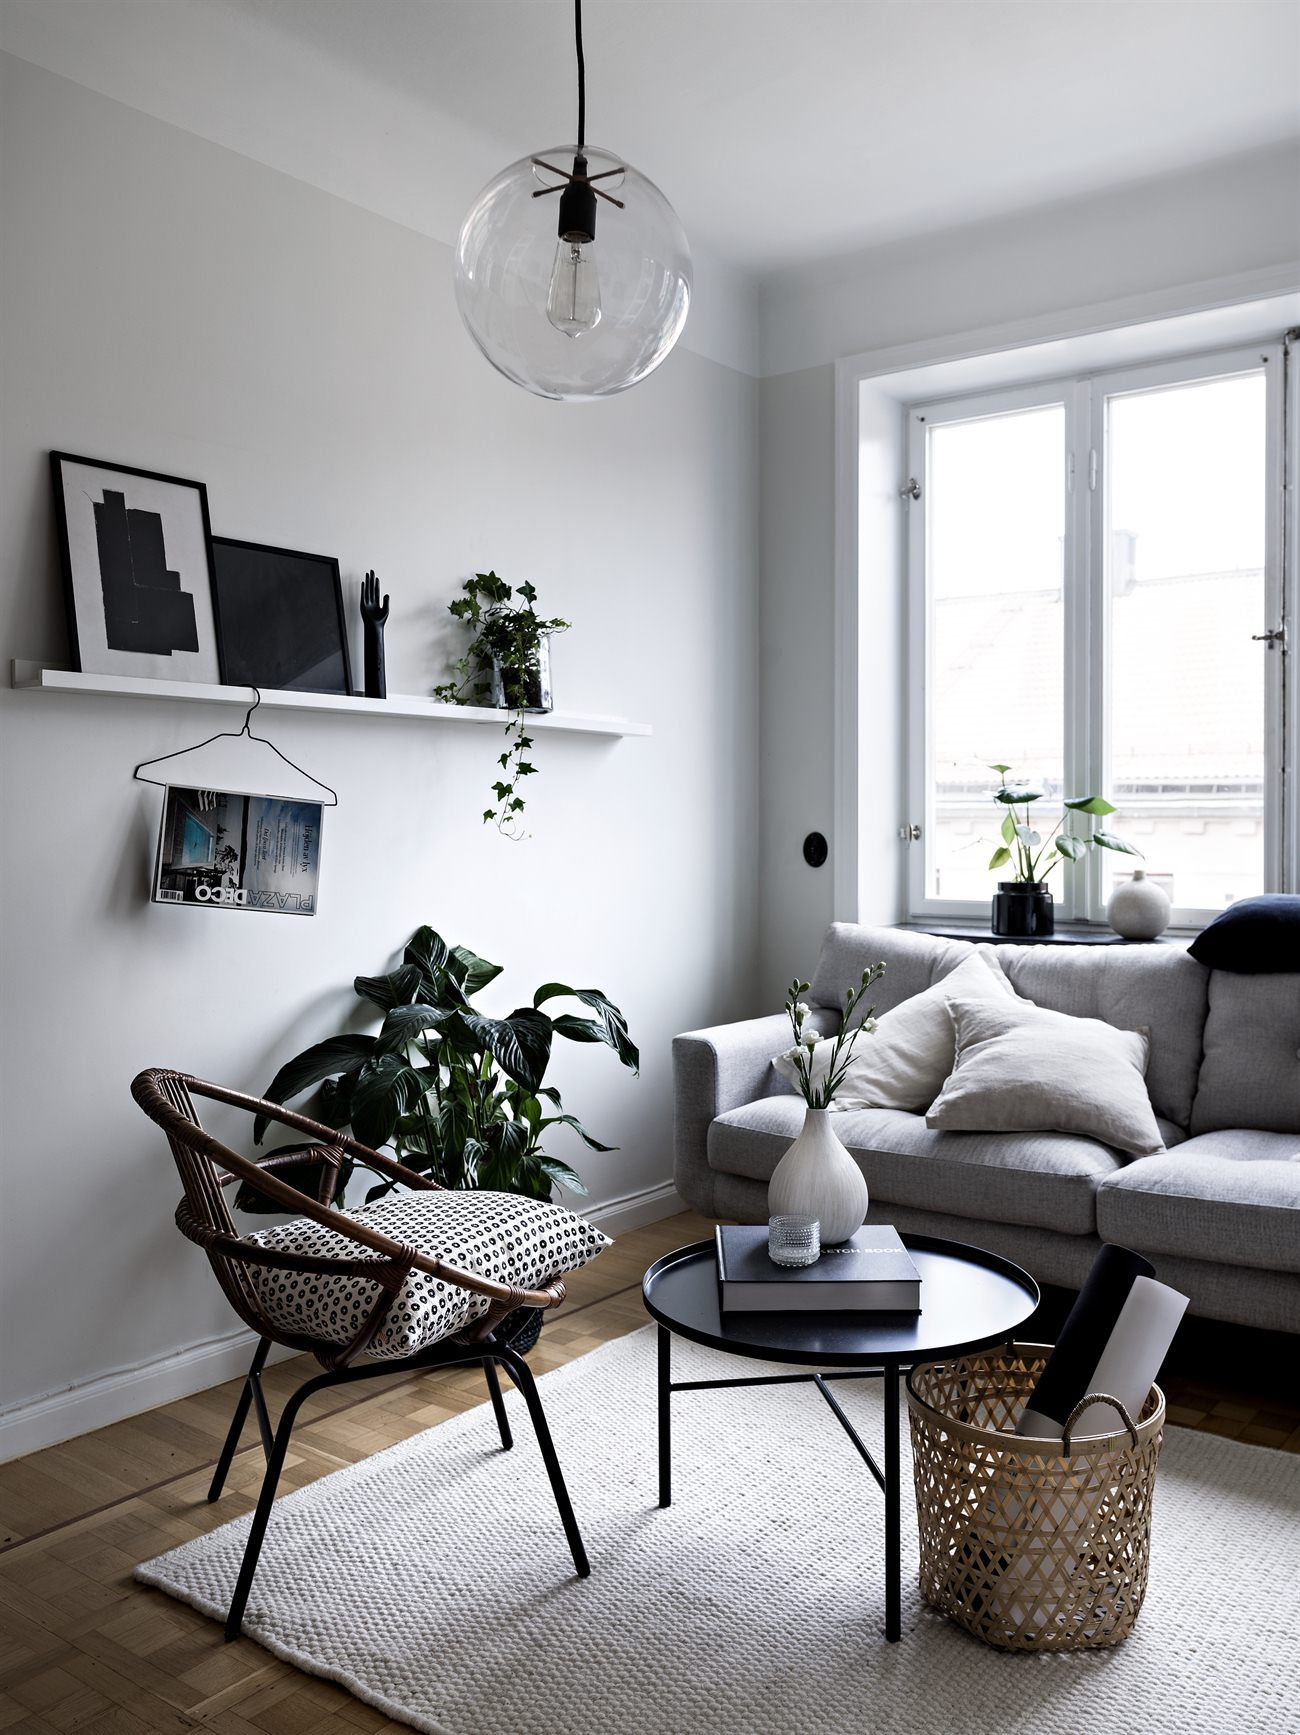 30 Minimalist Living Room Ideas Inspiration To Make The Most Of Your Space House Inspo